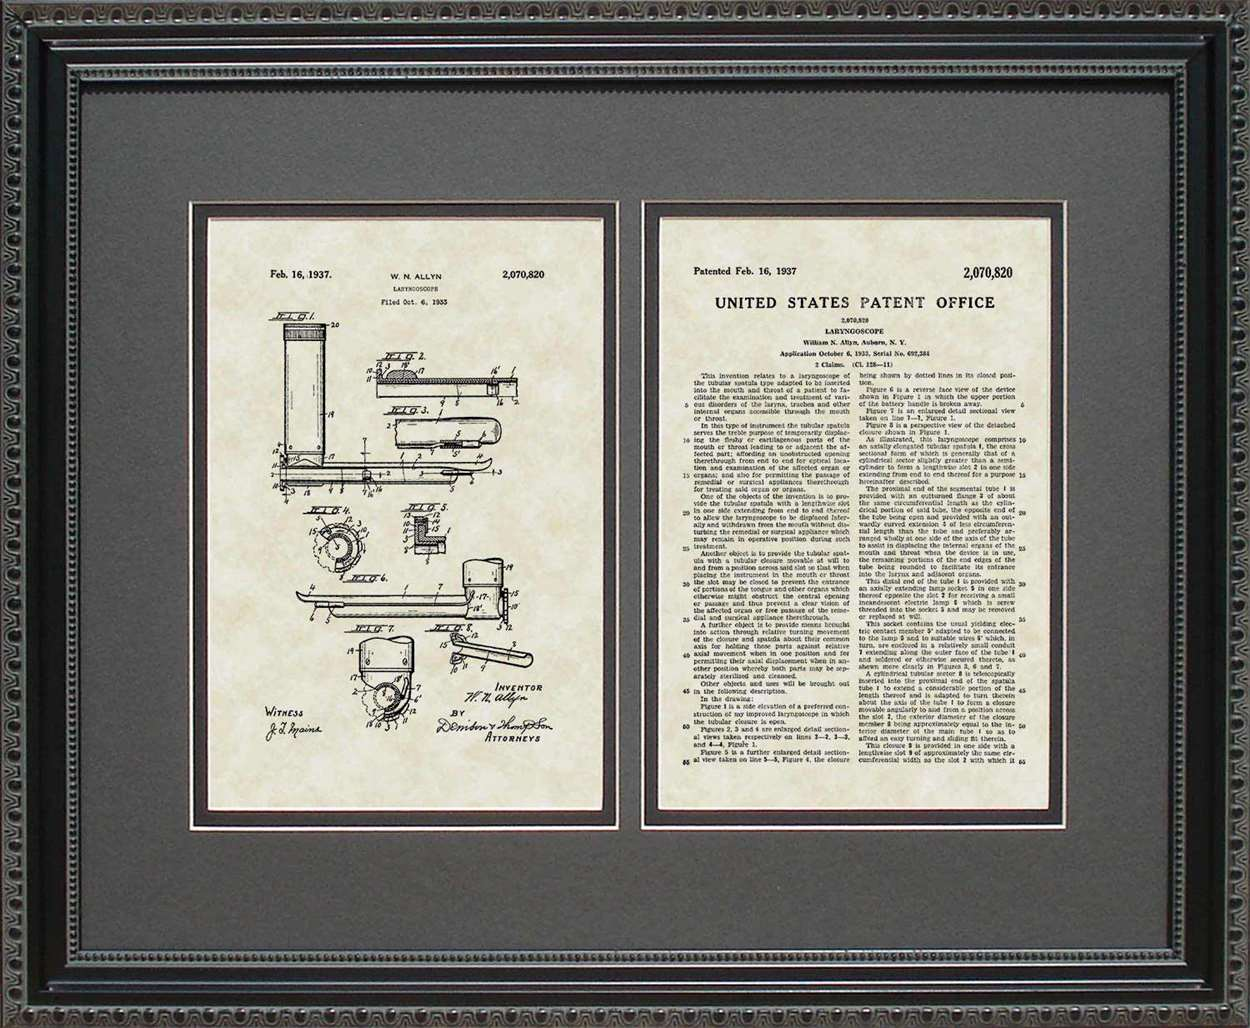 Laryngoscope Patent, Art & Copy, Allyn, 1937, 16x20